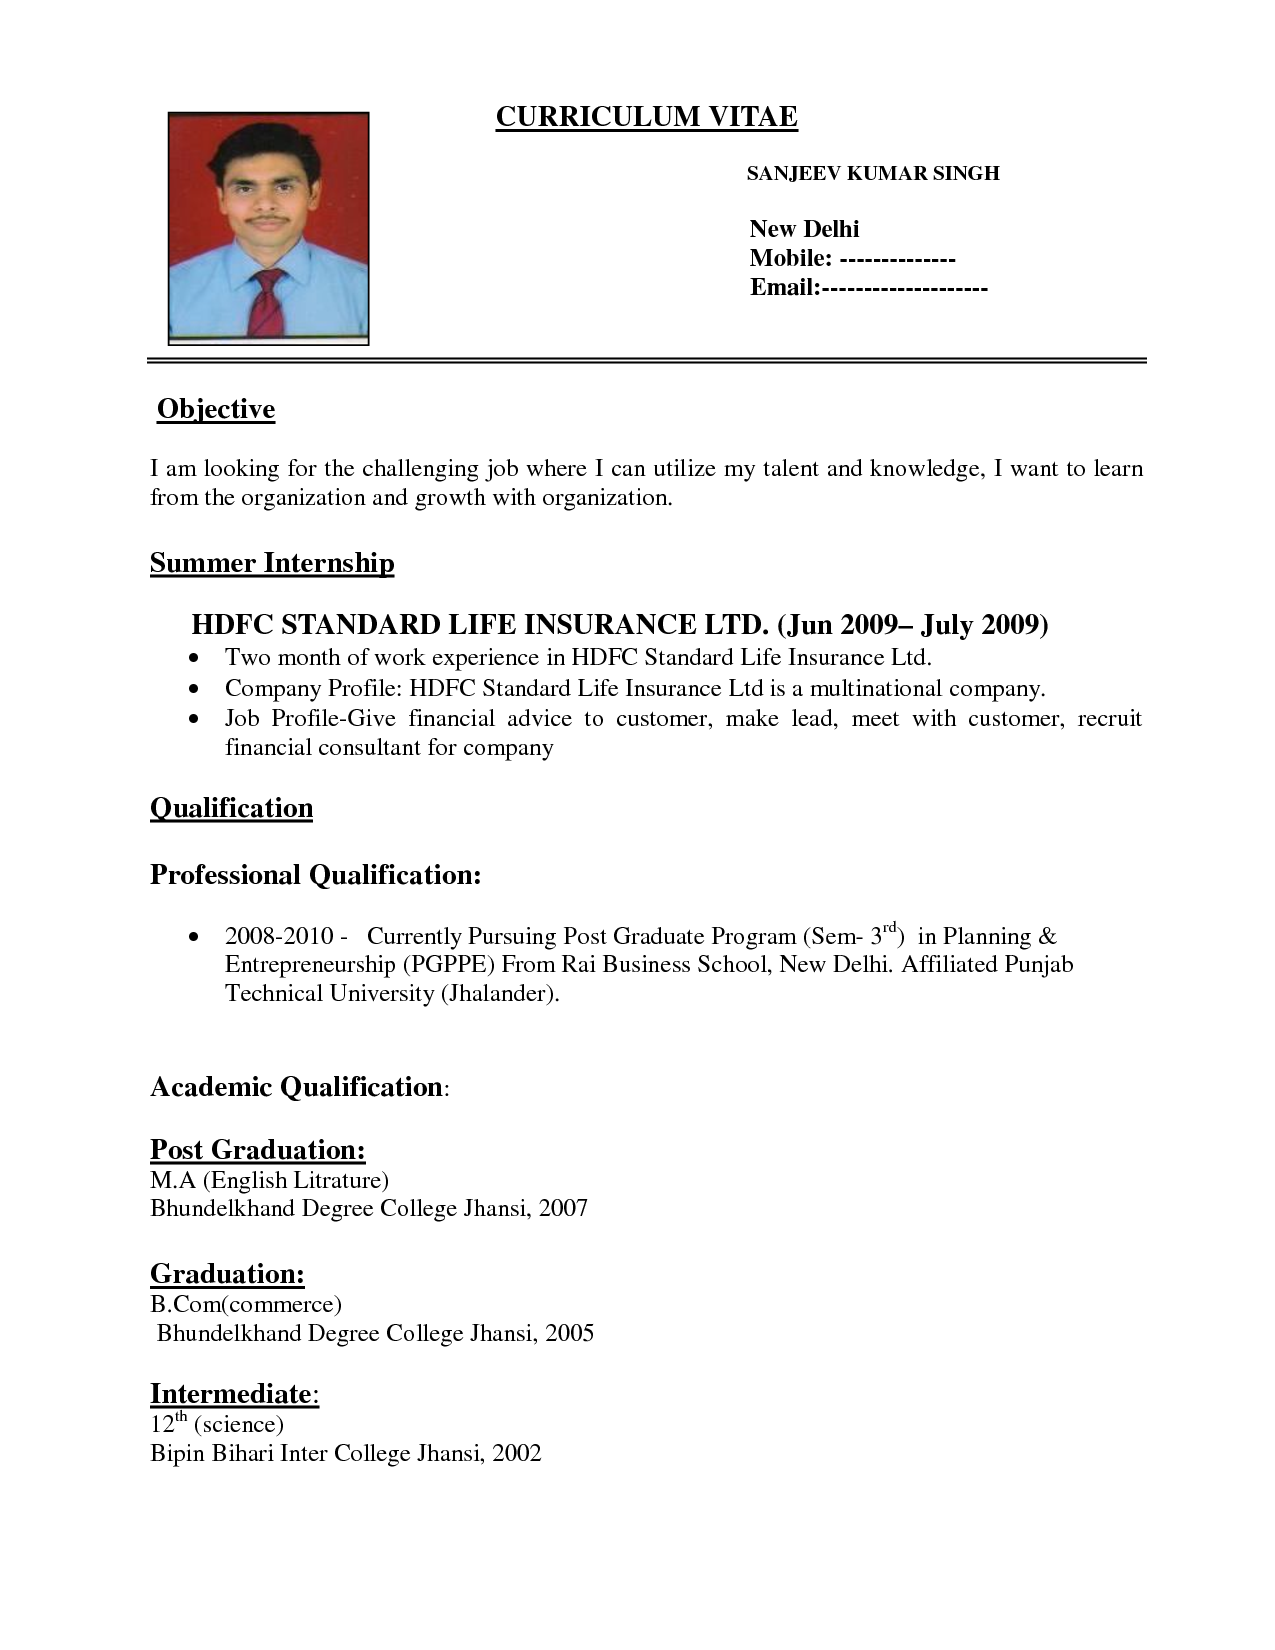 Curriculum Vitae Format Fotolip Rich Image And Wallpaper Resume